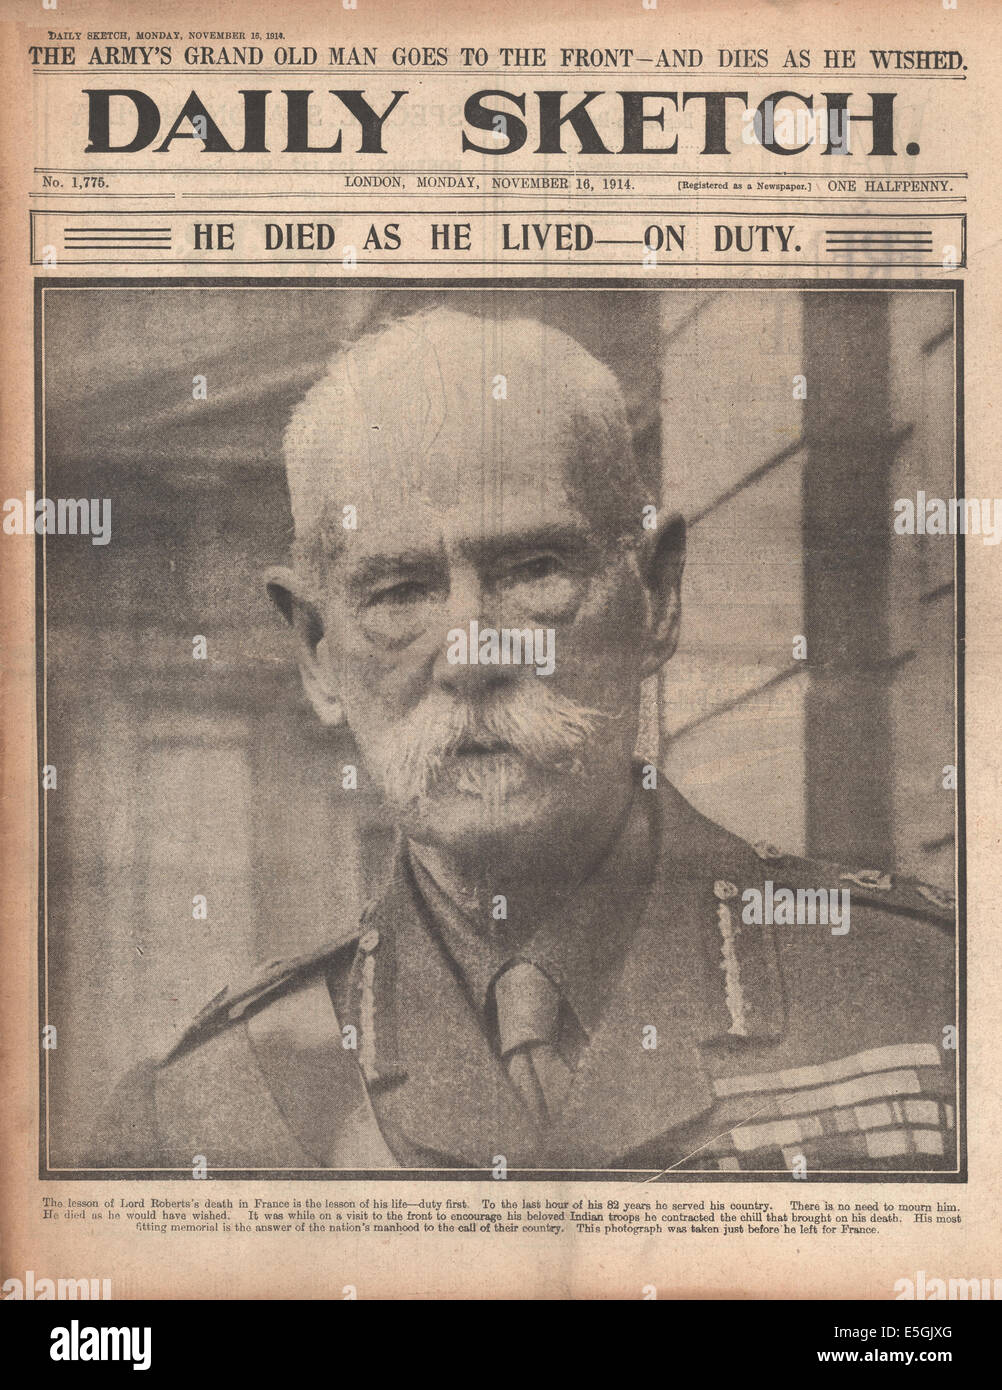 1914 Daily Sketch front page reporting Field Marshal Lord Roberts dies in France - Stock Image